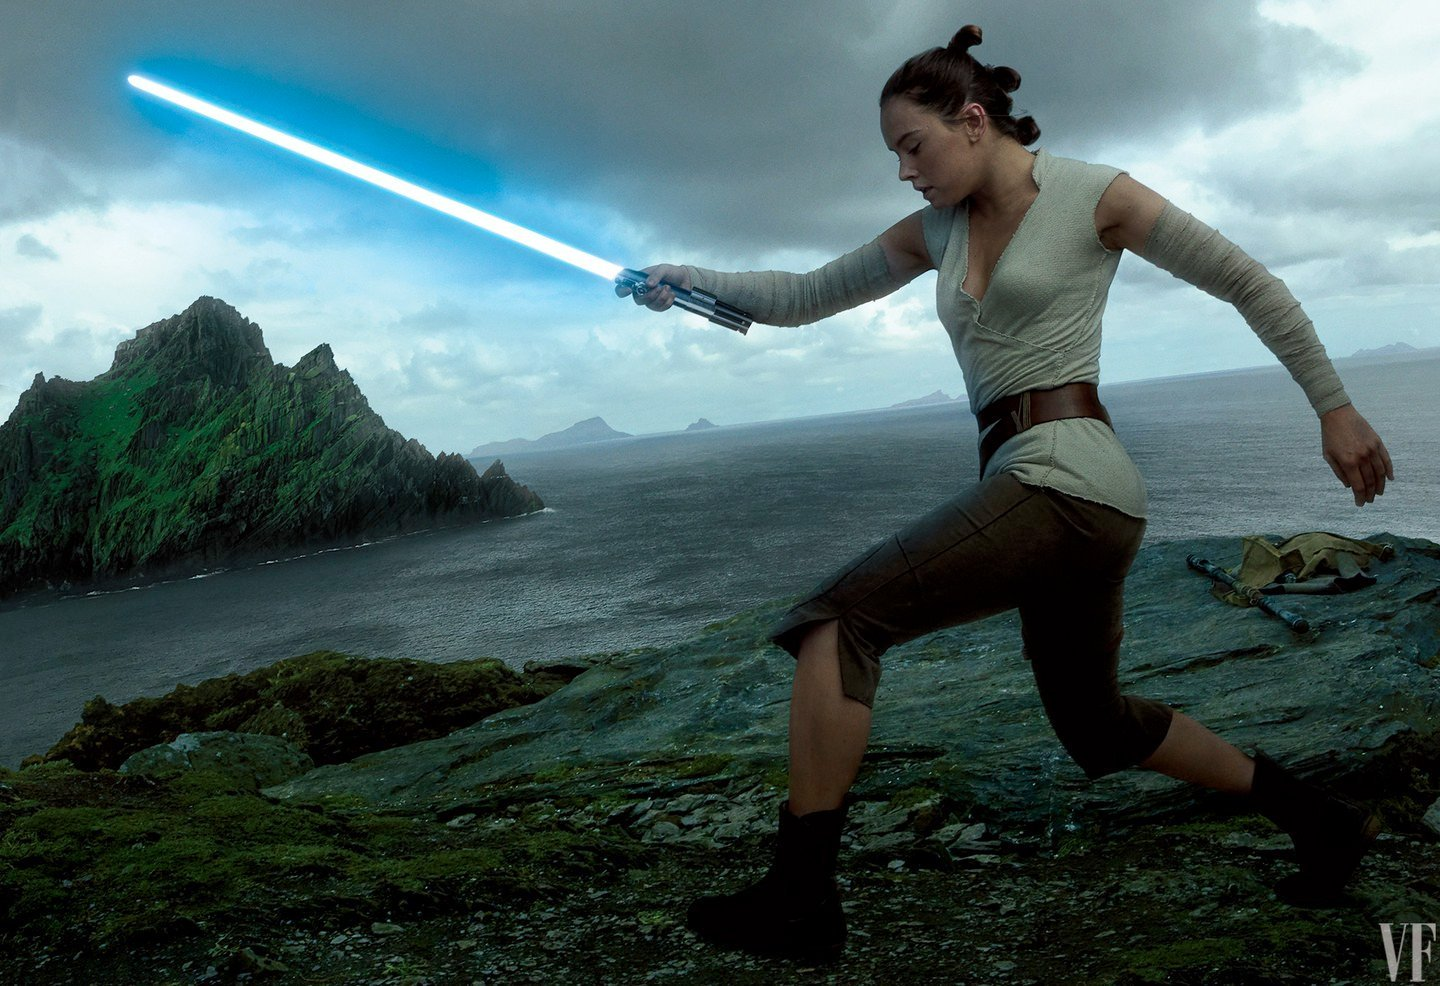 A photo of Daisy Ridley wielding a lightsaber as Rey, against the backdrop of oceans and islands, by one of my favourite photographers of all-time, Annie Leibovitz.